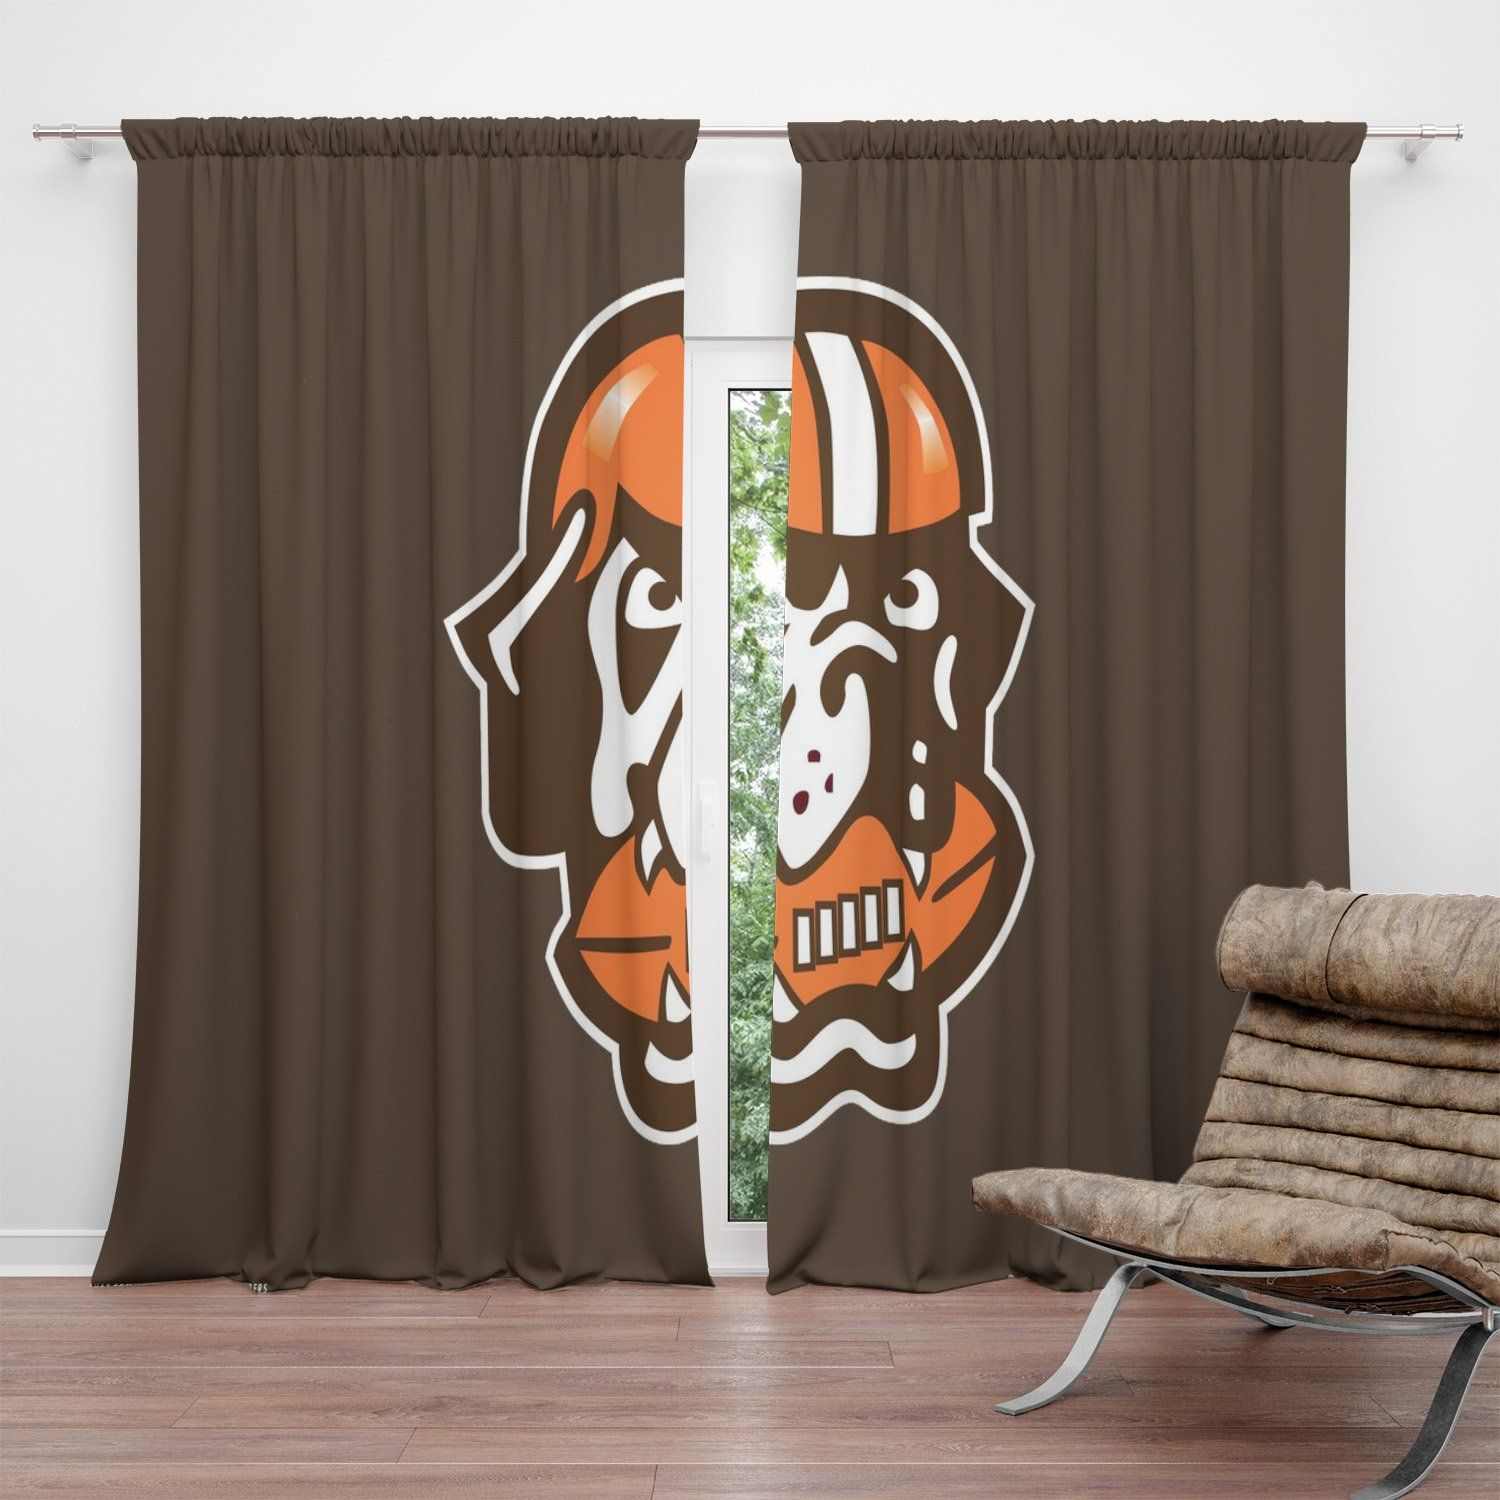 Pin On Blackout Curtain